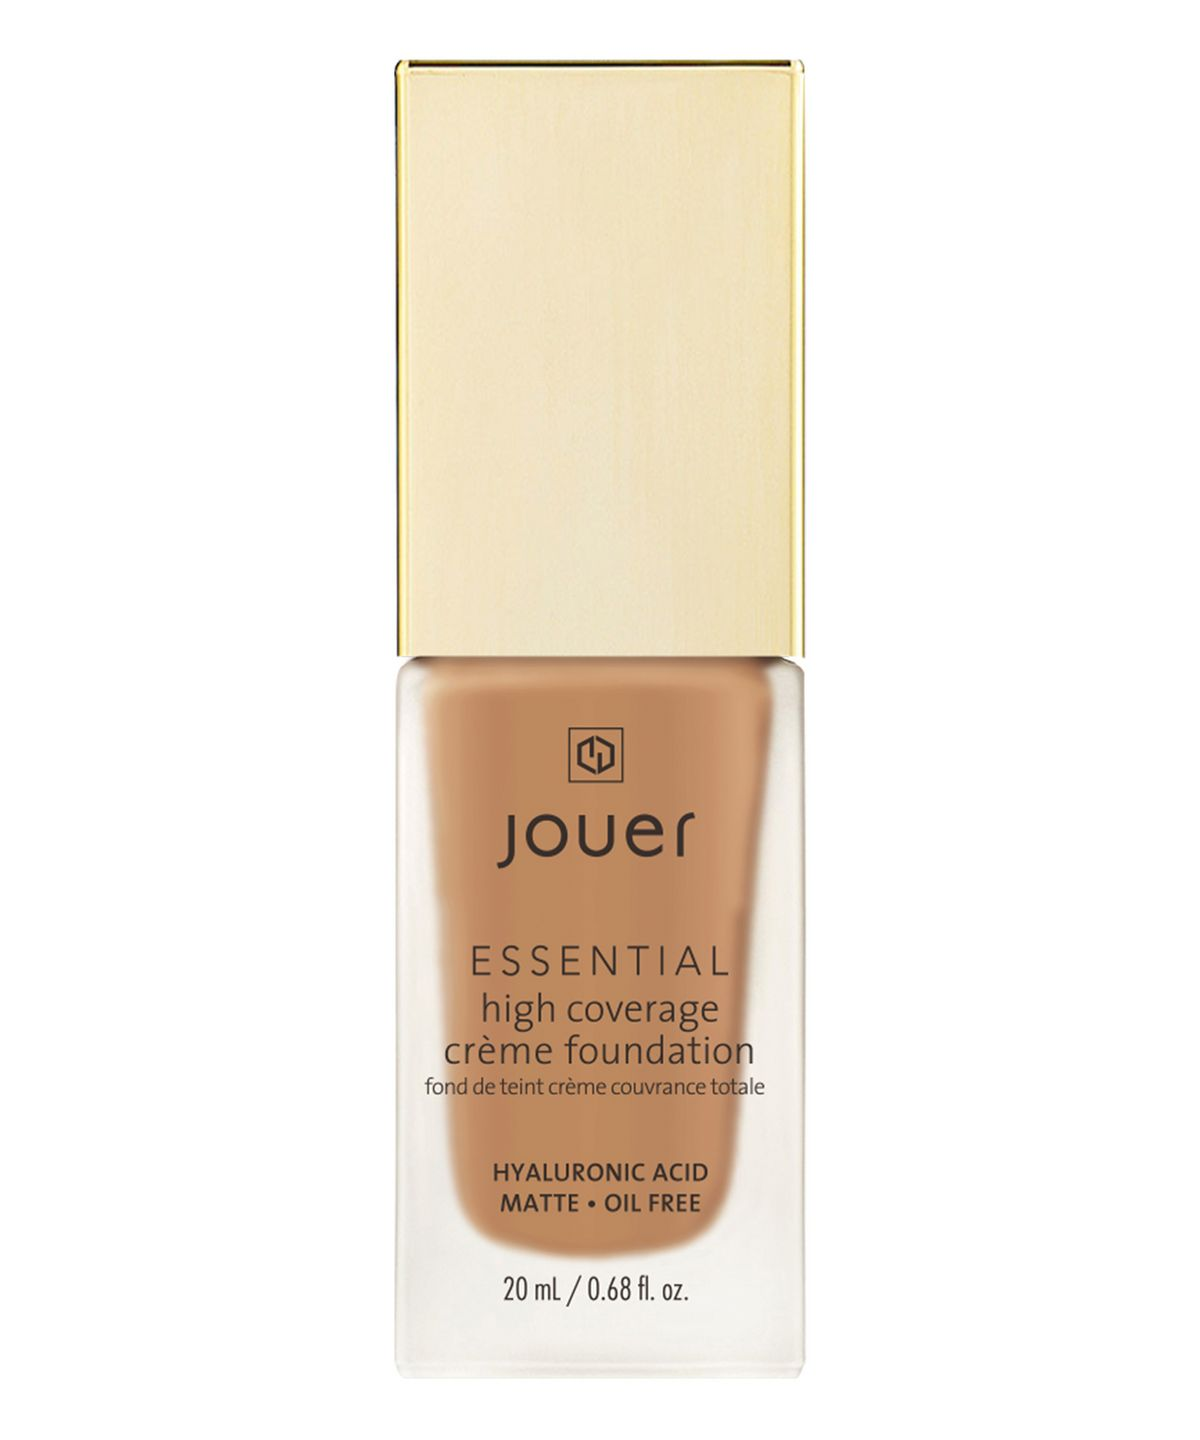 The best full coverage foundation for dry skin